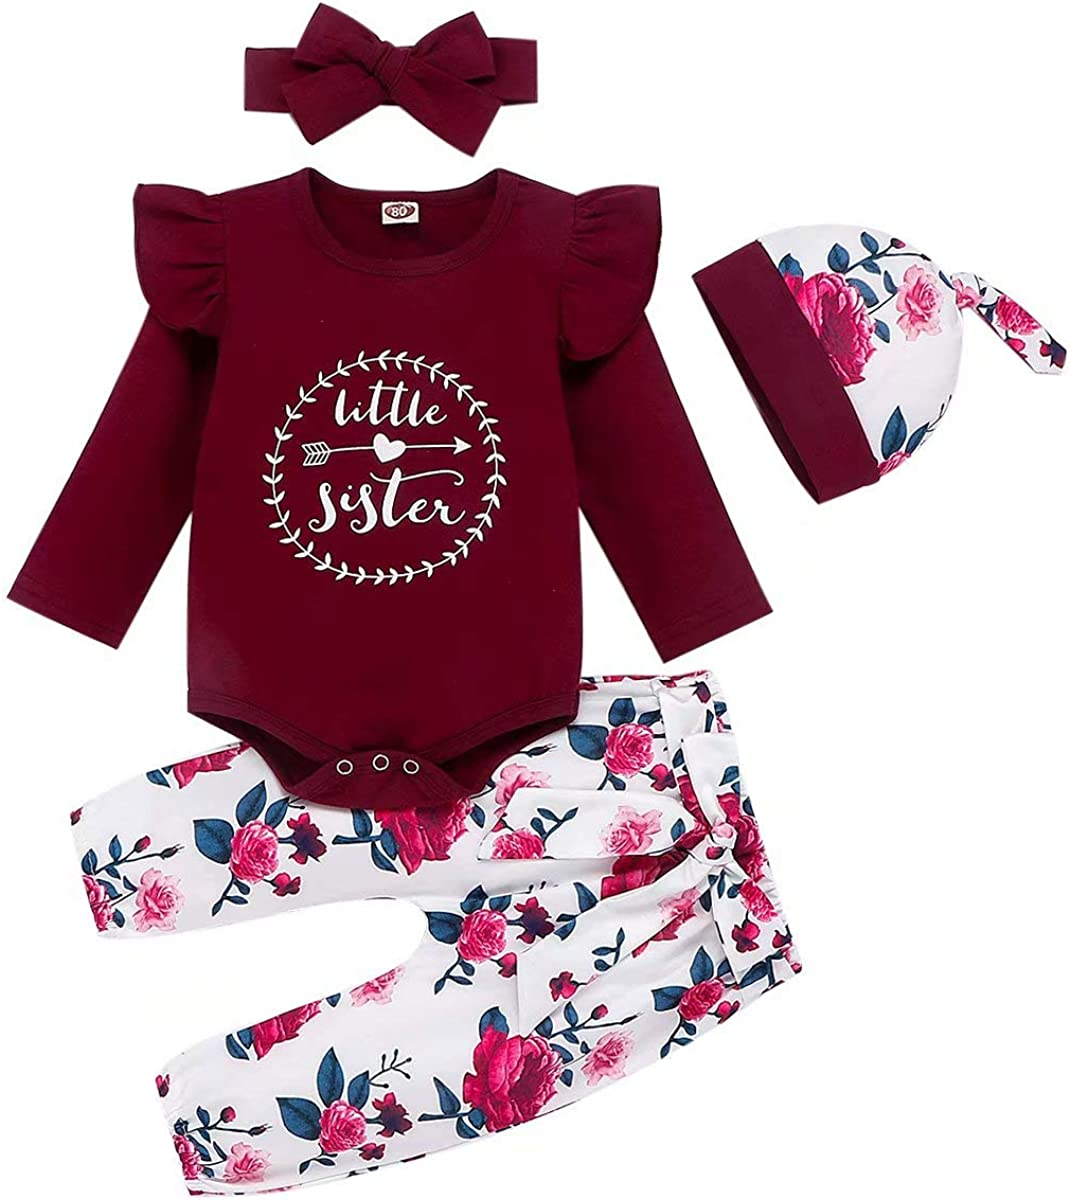 Baby Girl Clothes Newborn Outfits Infant Tops + Pants + Headband or Hats 4PCS